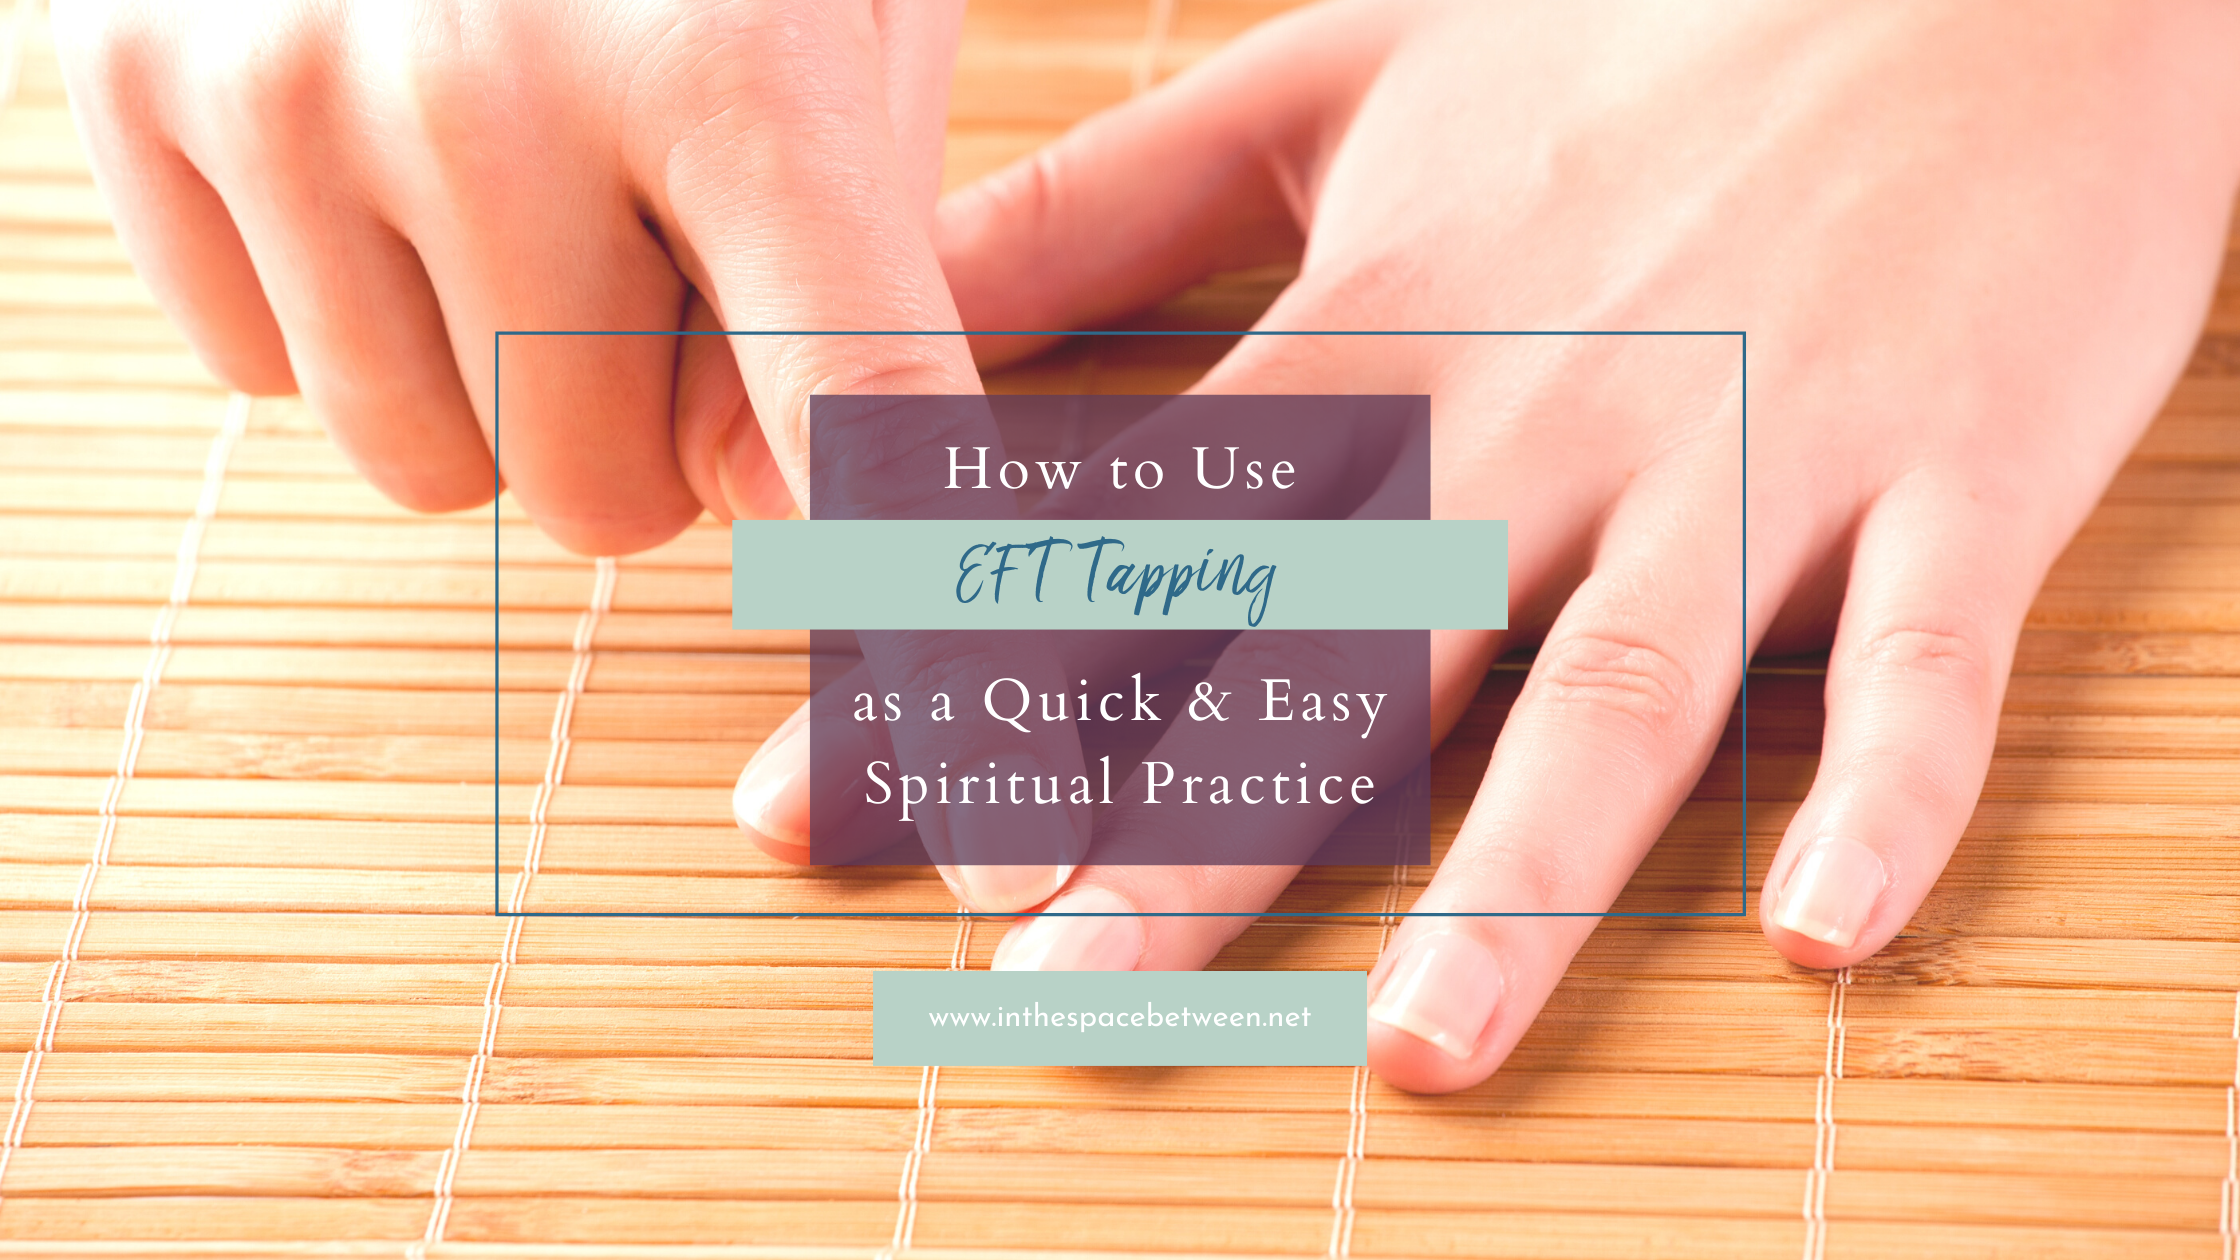 EFT Tapping as a Quick & Easy Spiritual Practice